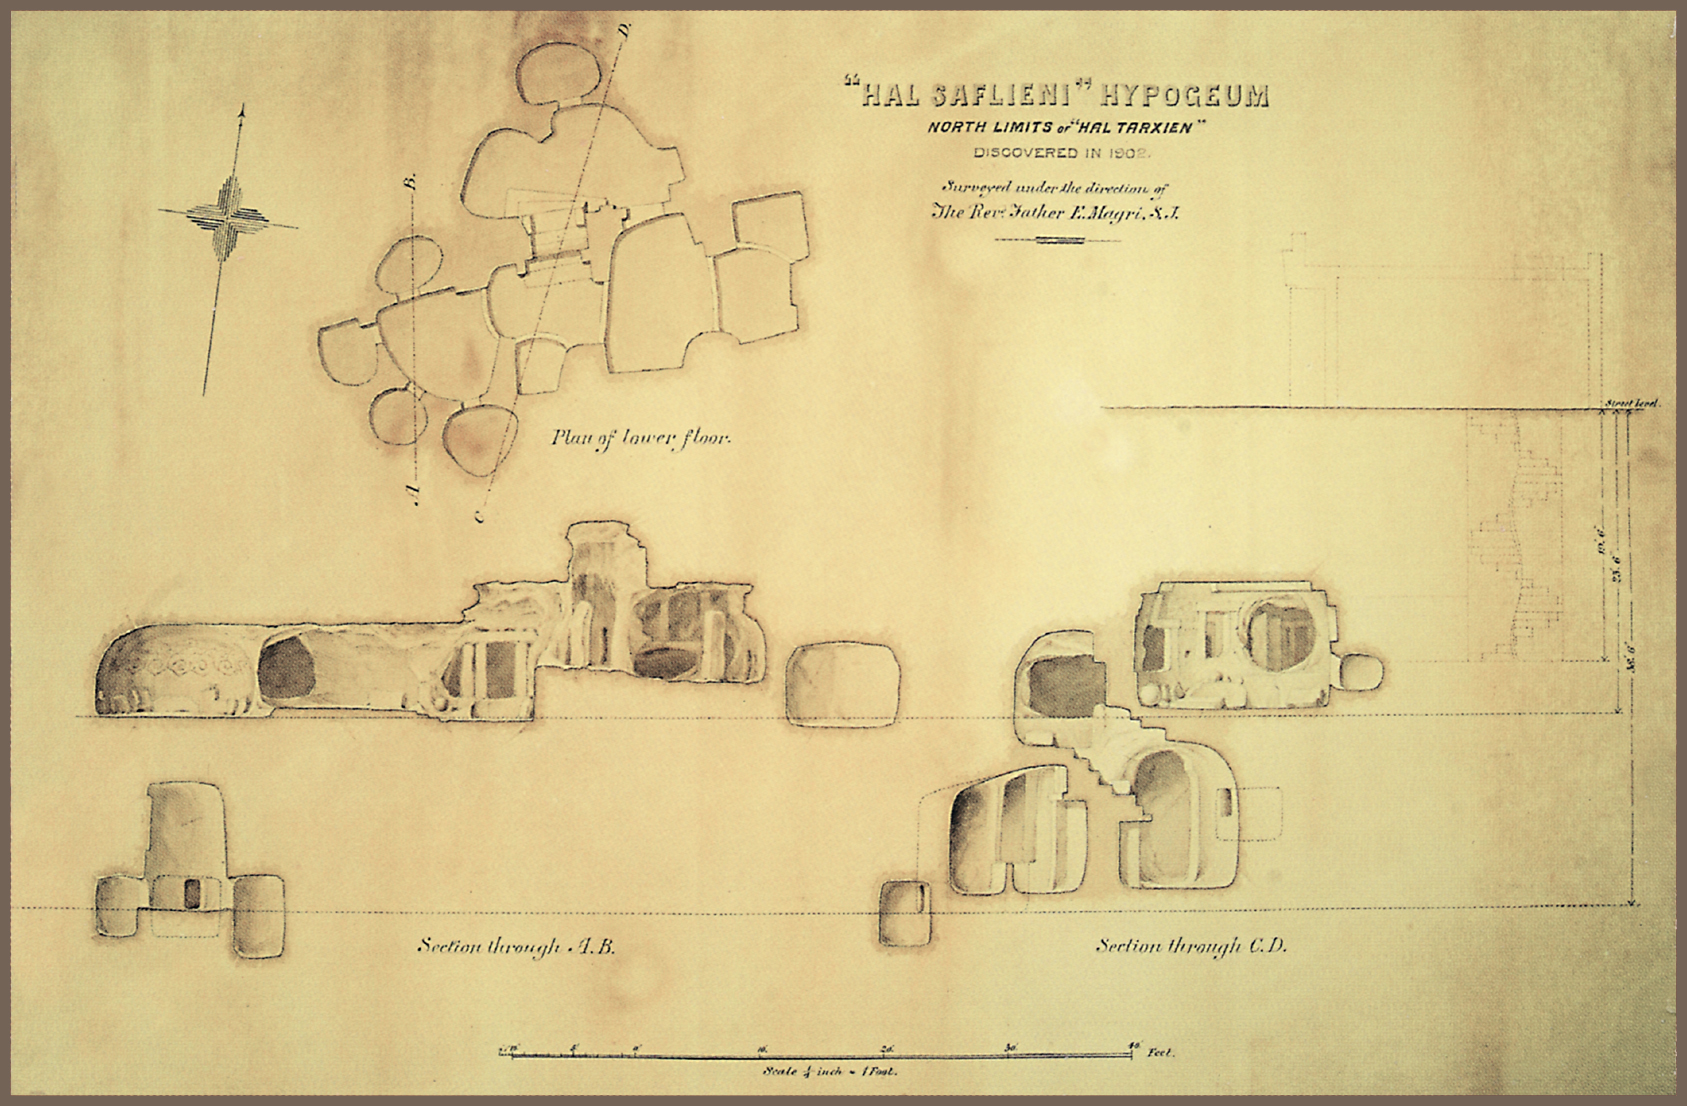 Site map of the Hypogeum made in October 1907